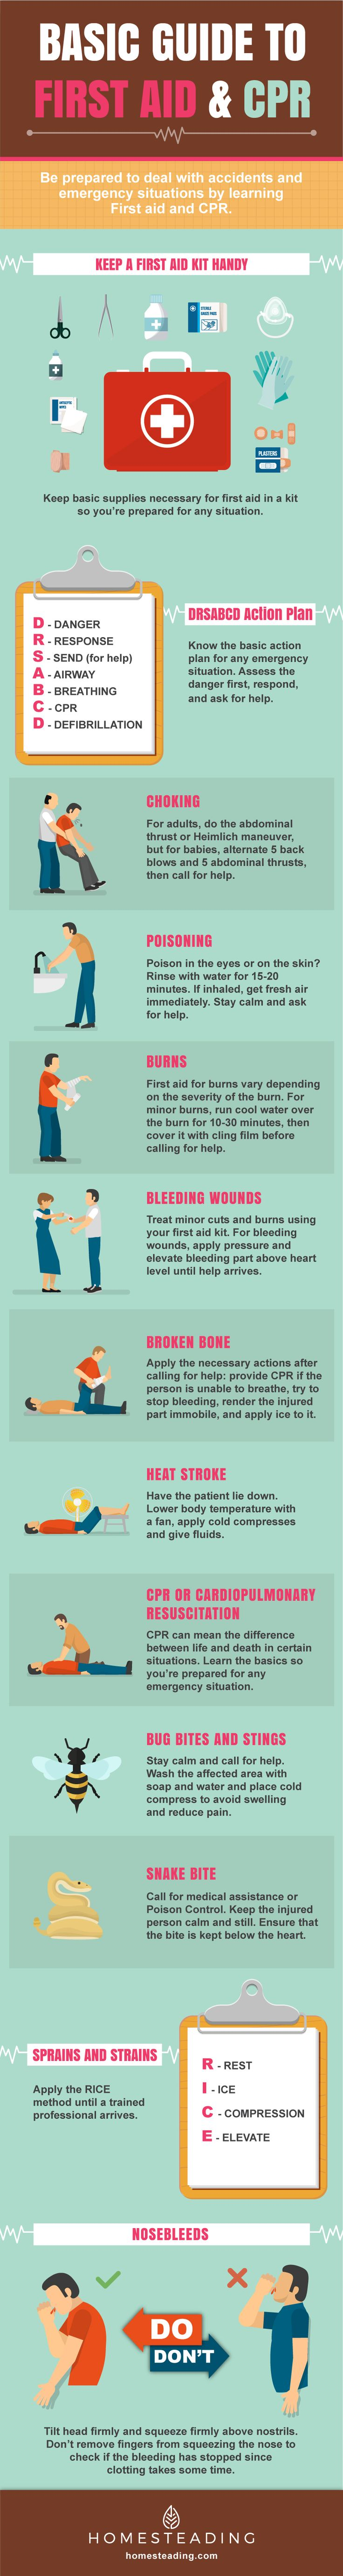 Best 25 First Aid Classes Ideas On Pinterest Choking